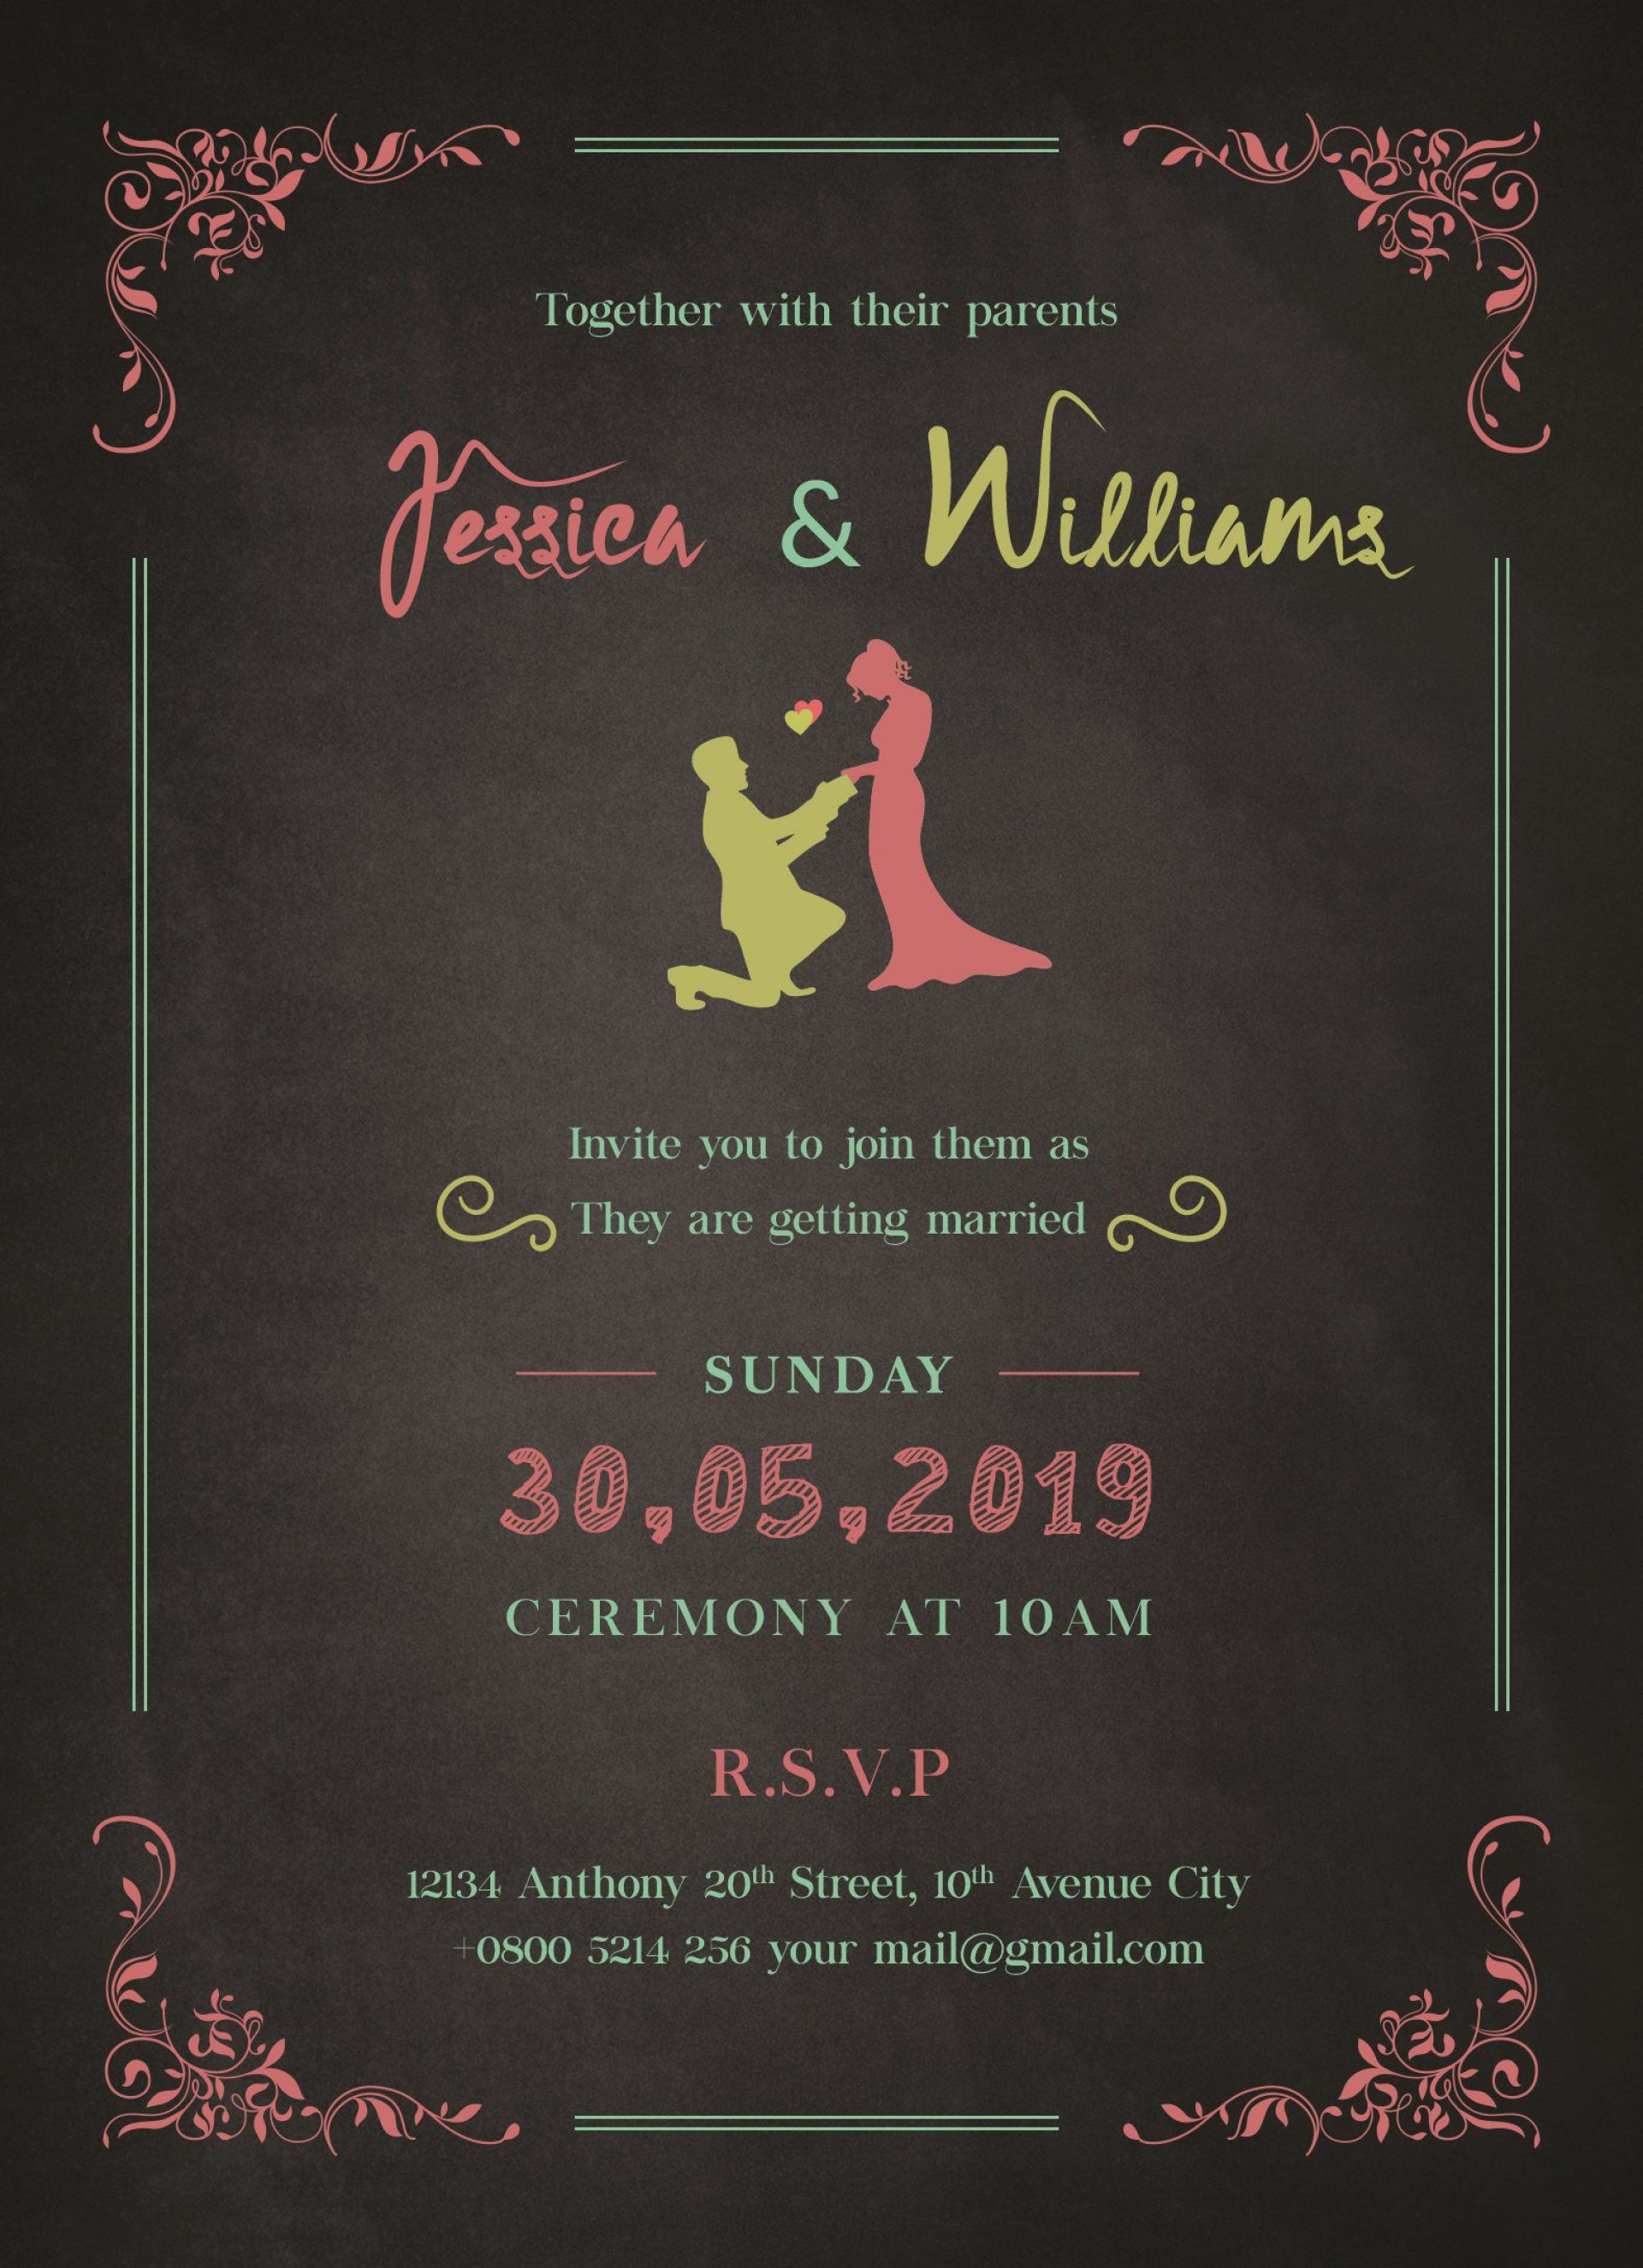 009 Imposing Free Download Invitation Card Design Software Sample  Wedding For Pc Indian1920